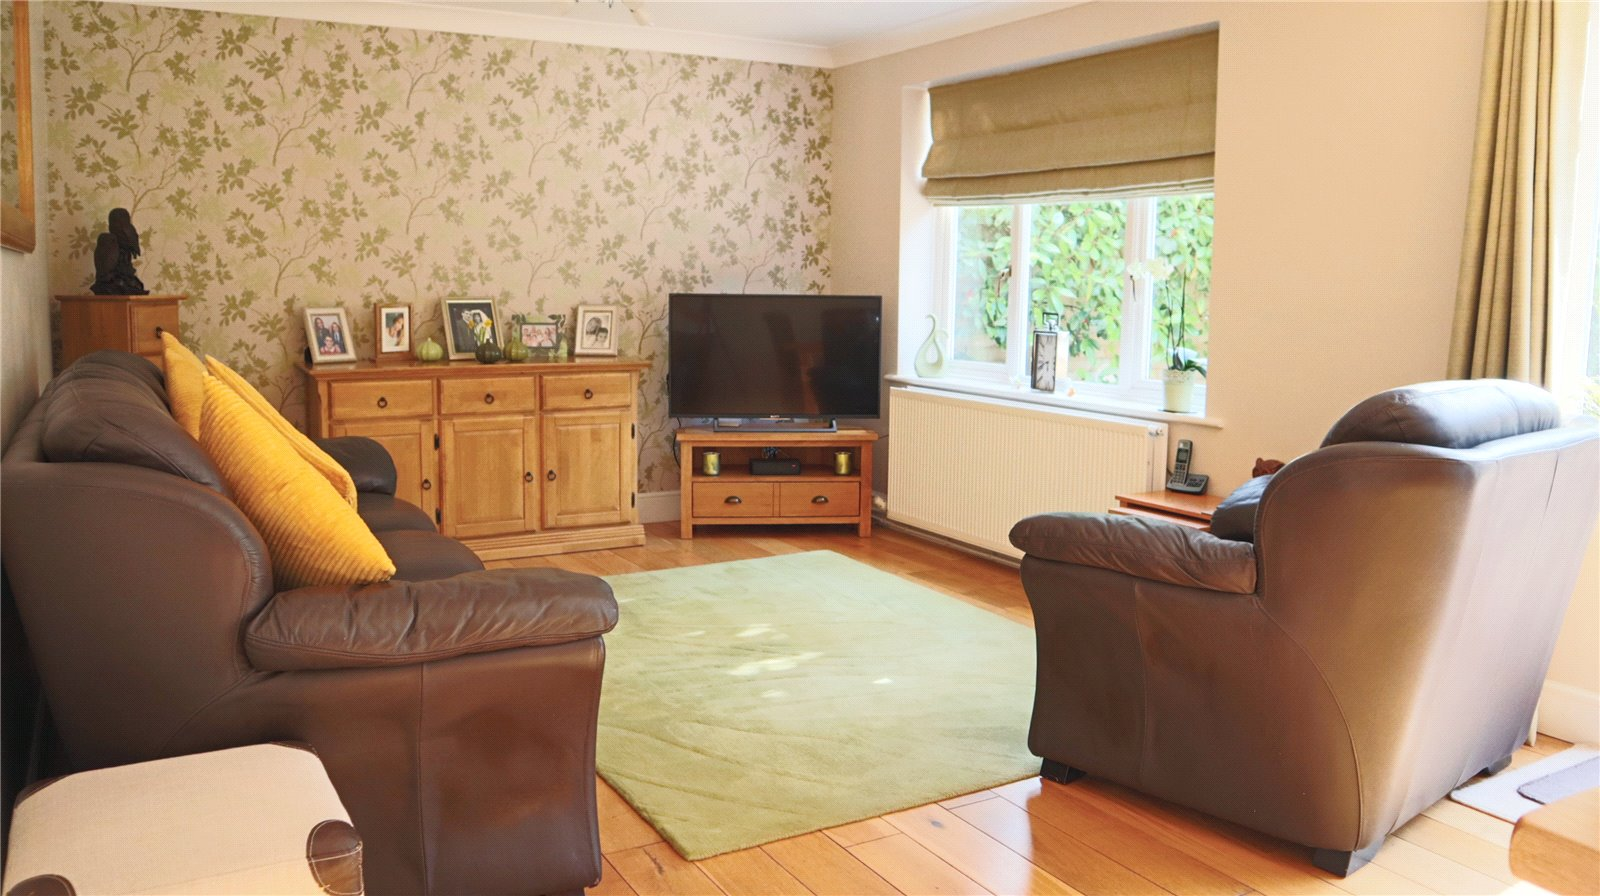 3 bed house for sale in Hathaway Close, Eaton Socon 2